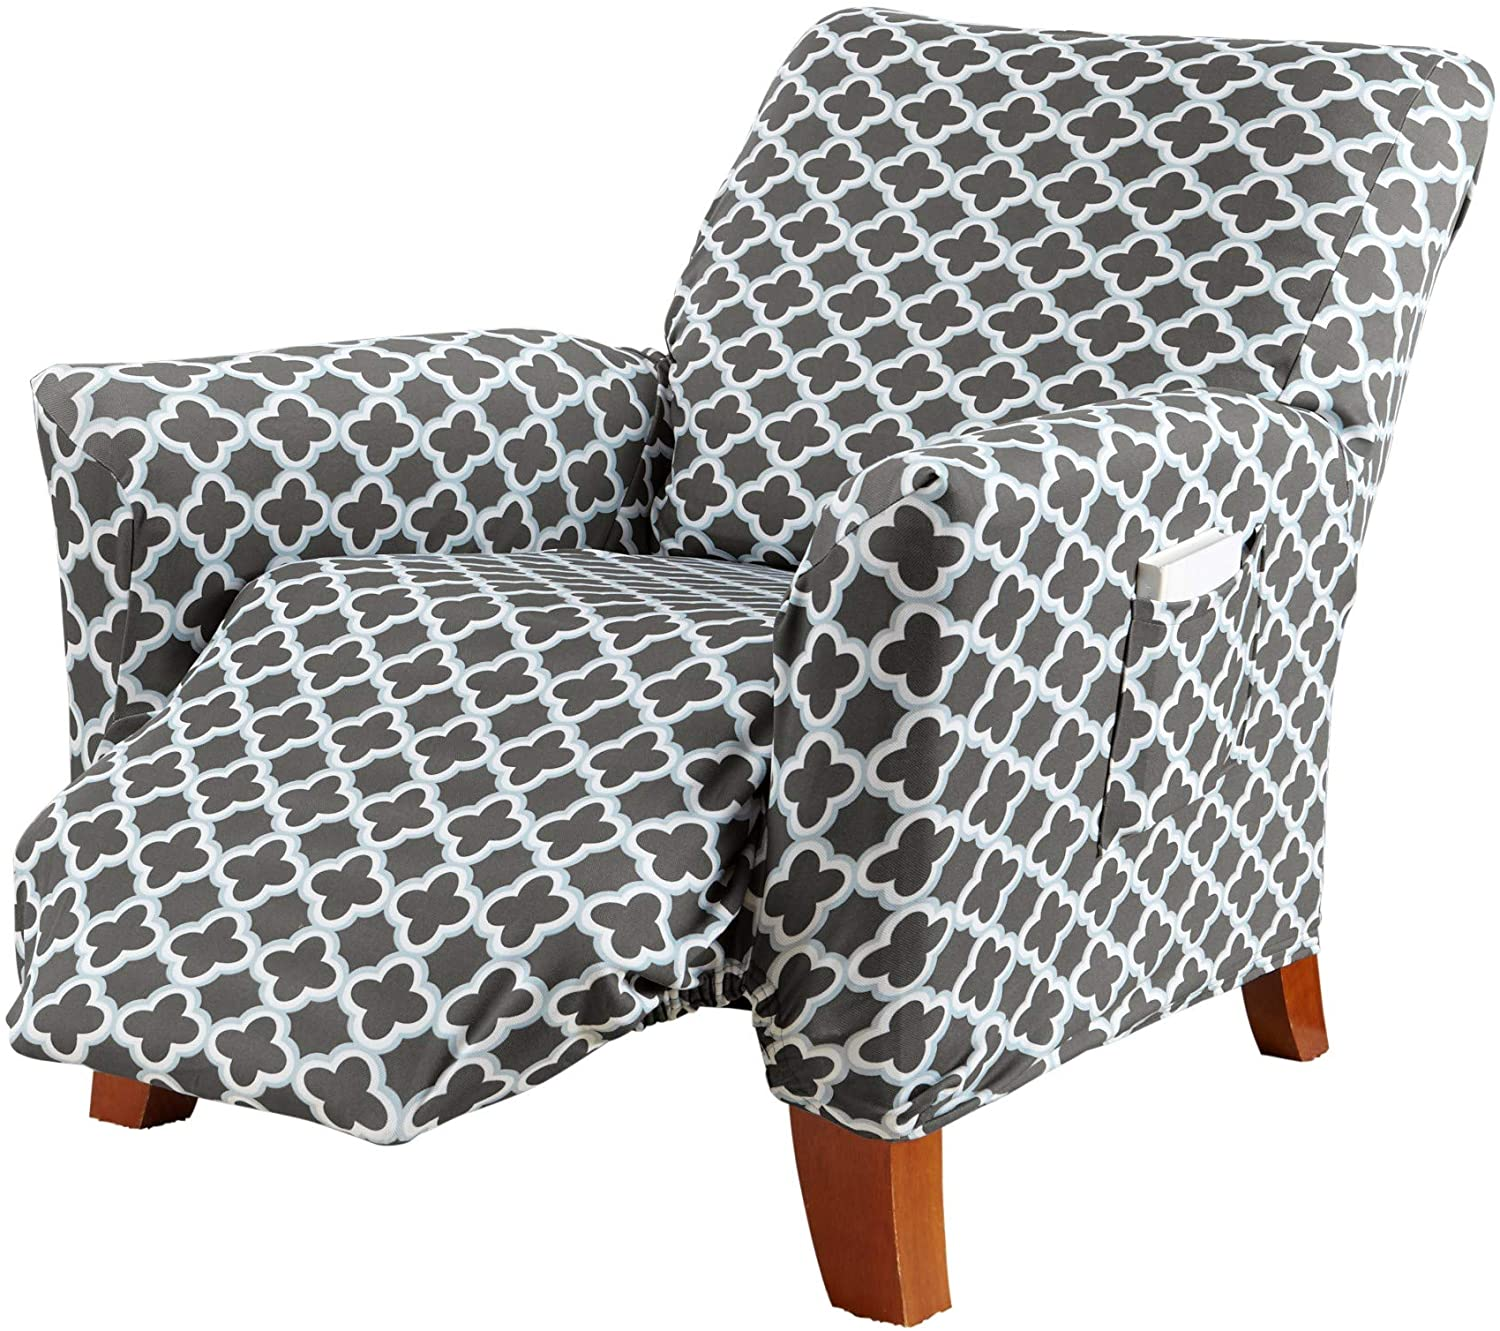 Printed Twill Recliner Slipcover. One Piece Stretch Recliner Cover. Strapless Recliner Cover for Living Room. Fallon Collection Slipcover. (Recliner, Charcoal)